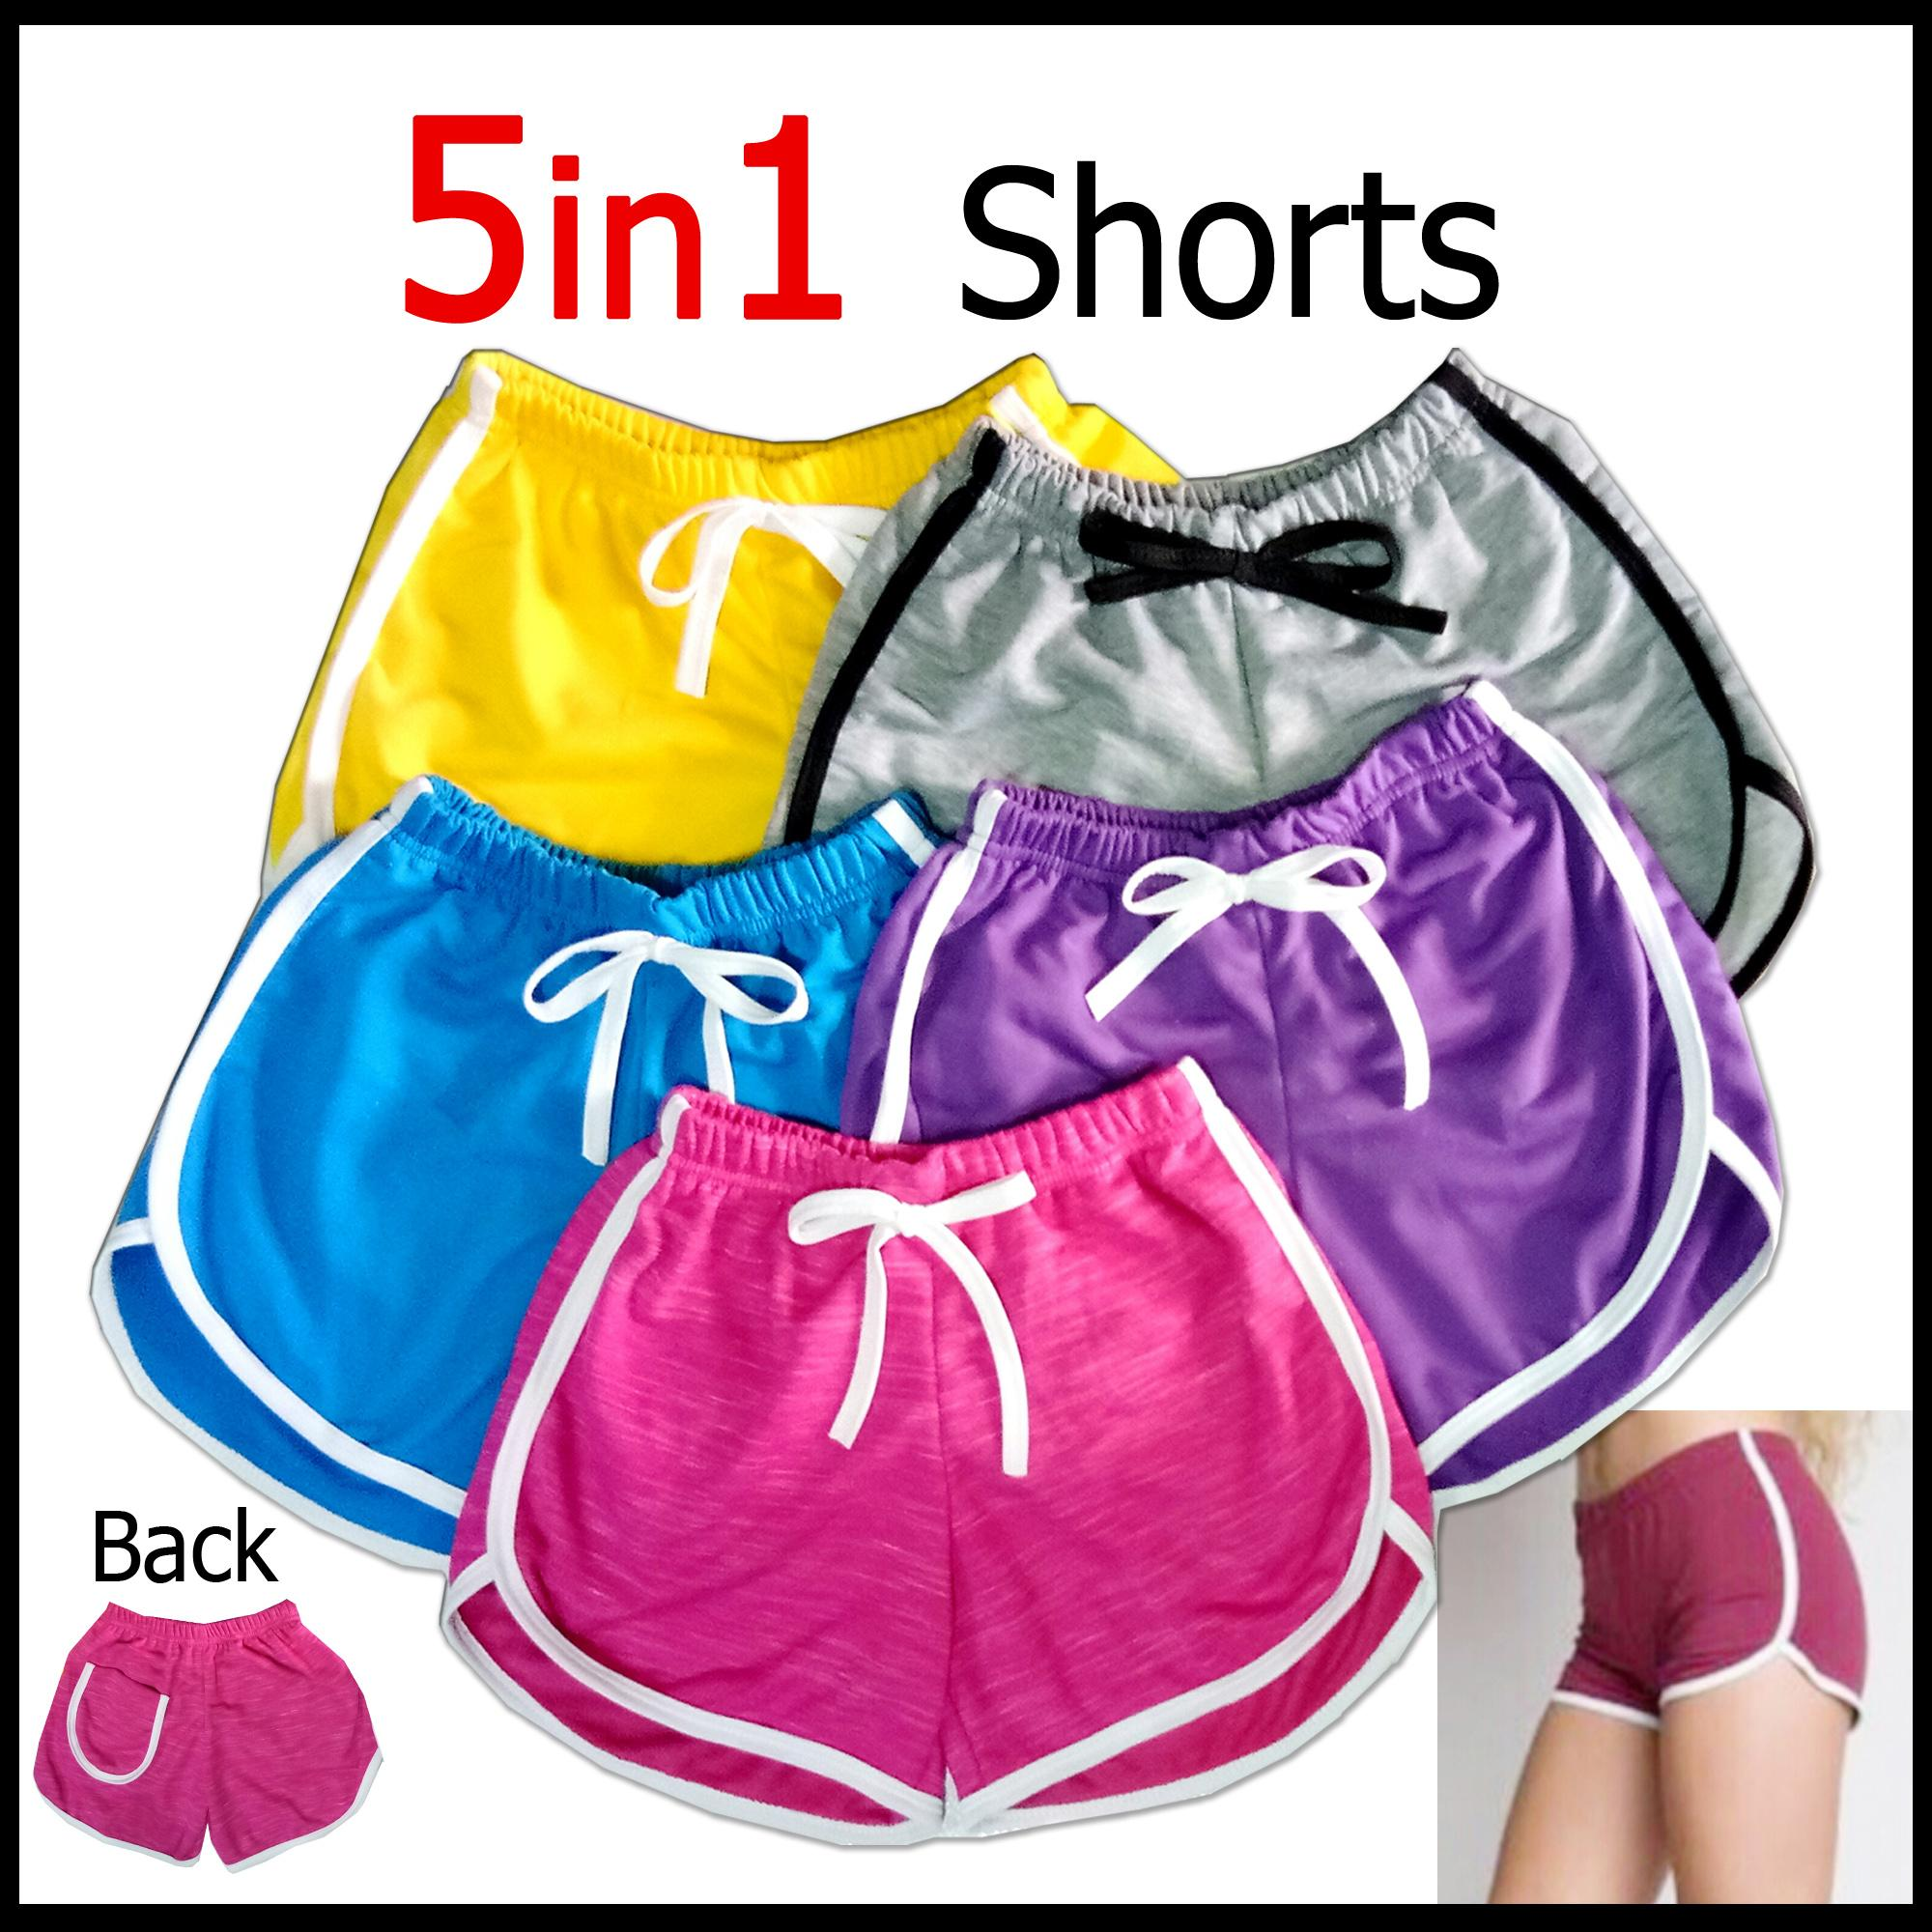 713a422da8887 Girls Bottoms for sale - Pants and Shorts for Girls online brands ...